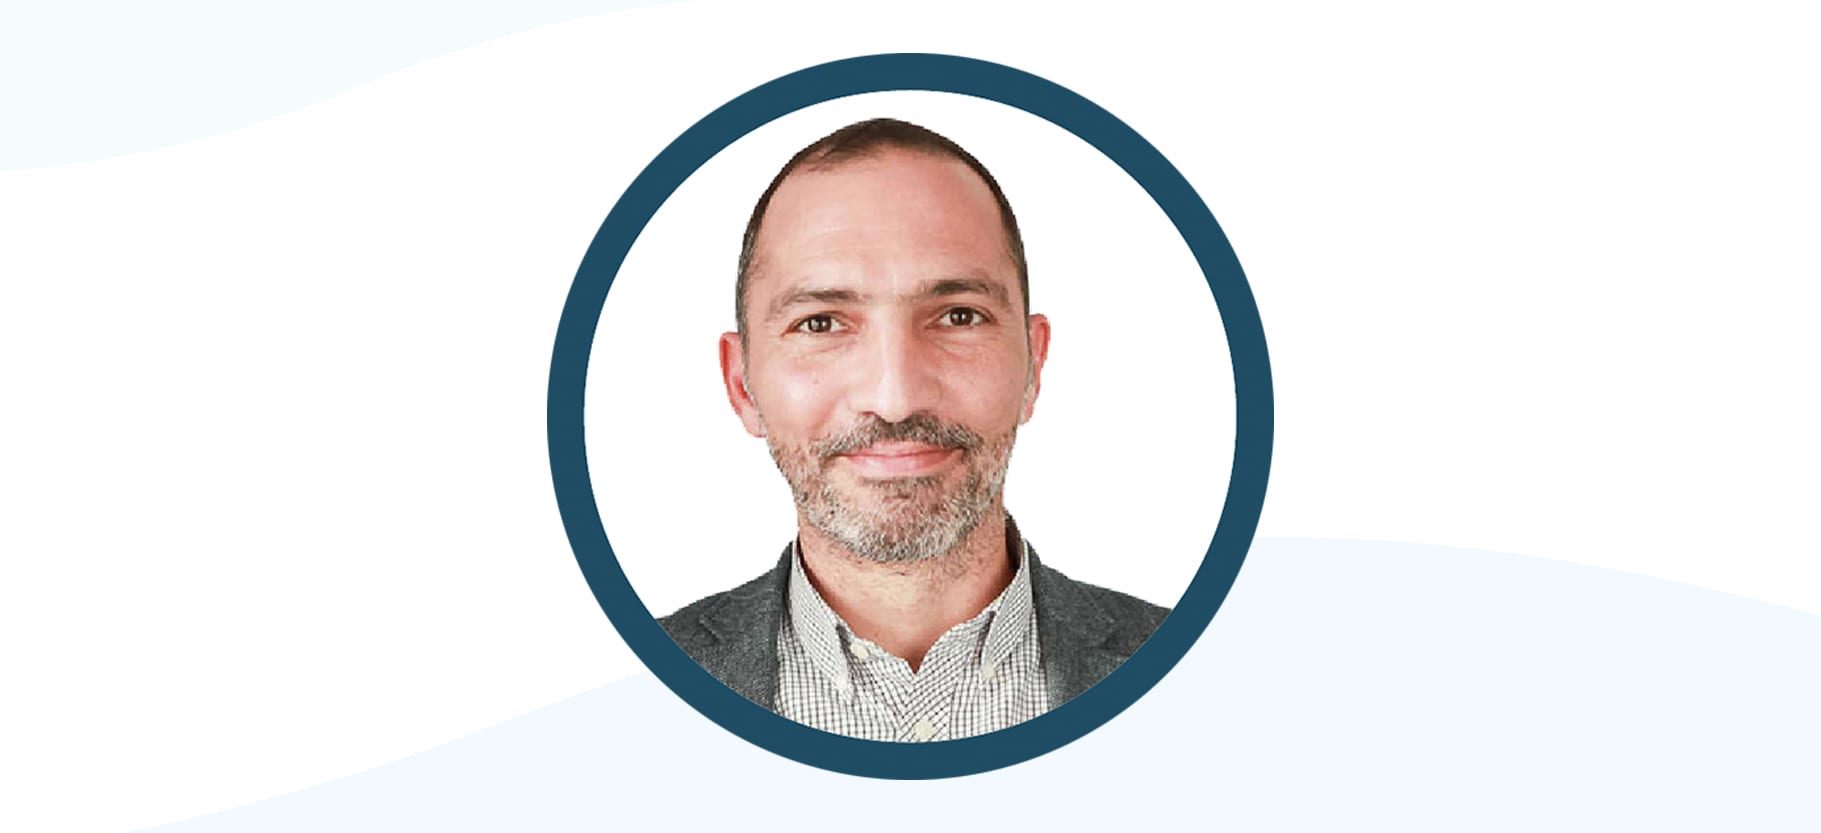 Blueface is pleased to announce the appointment of Nameer Kazzaz as new CTO.